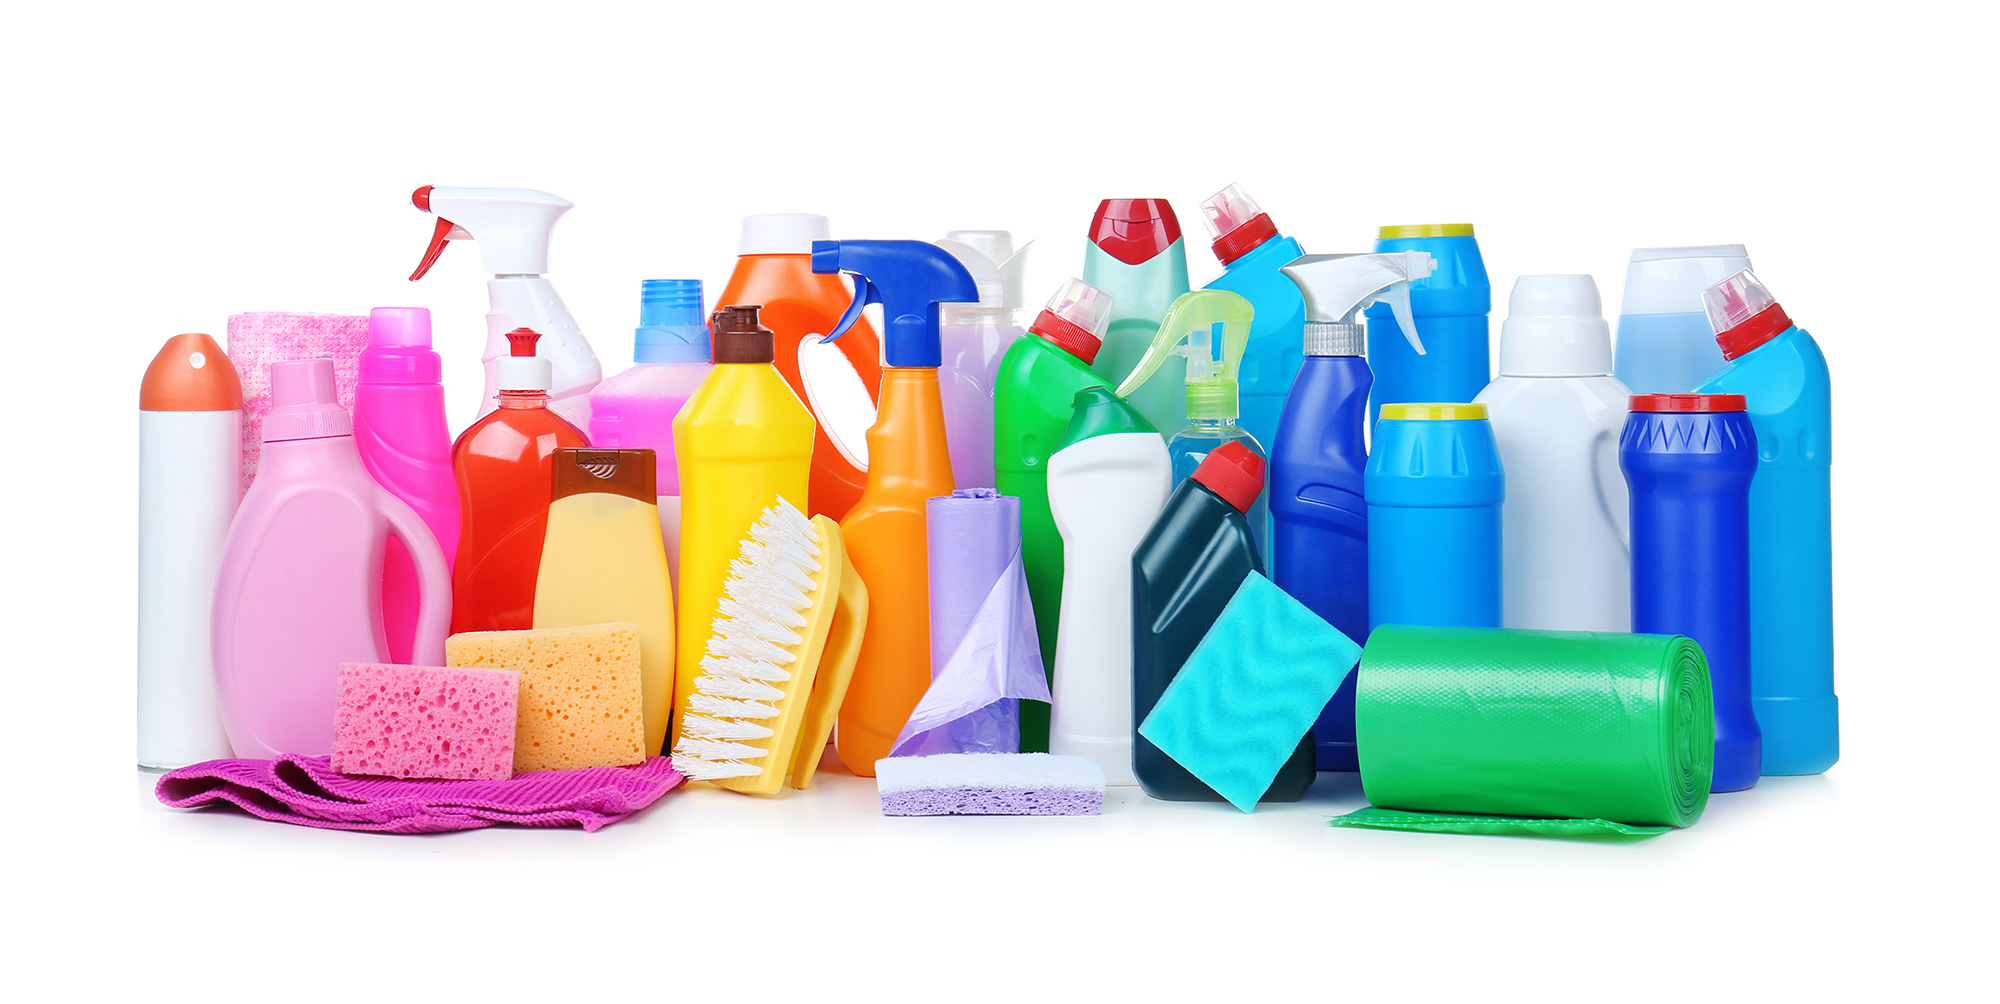 Different cleaning supplies on white background